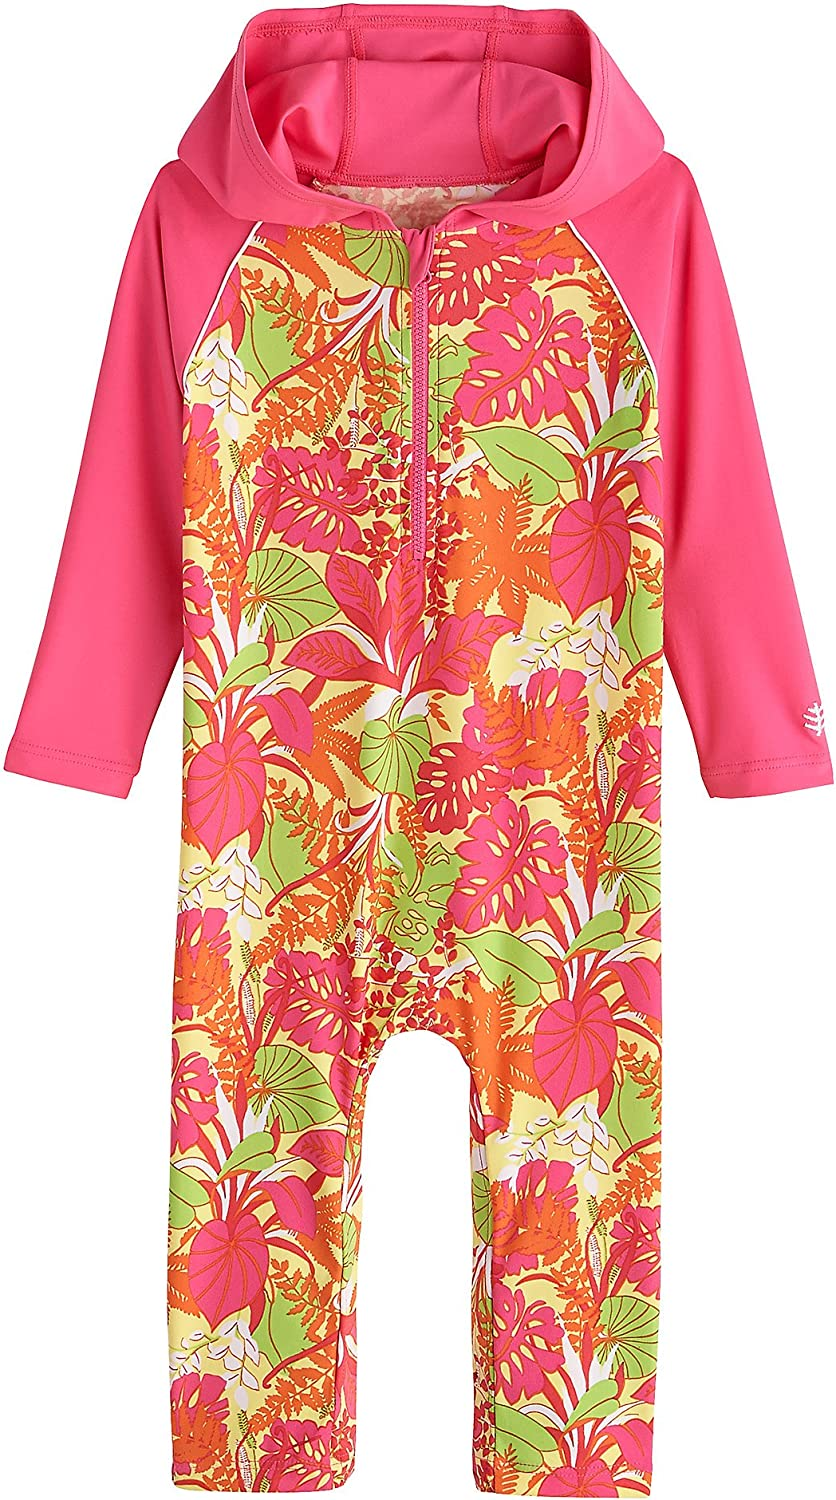 Baby Hooded One Piece Swimsuit Sun Protective Coolibar UPF 50